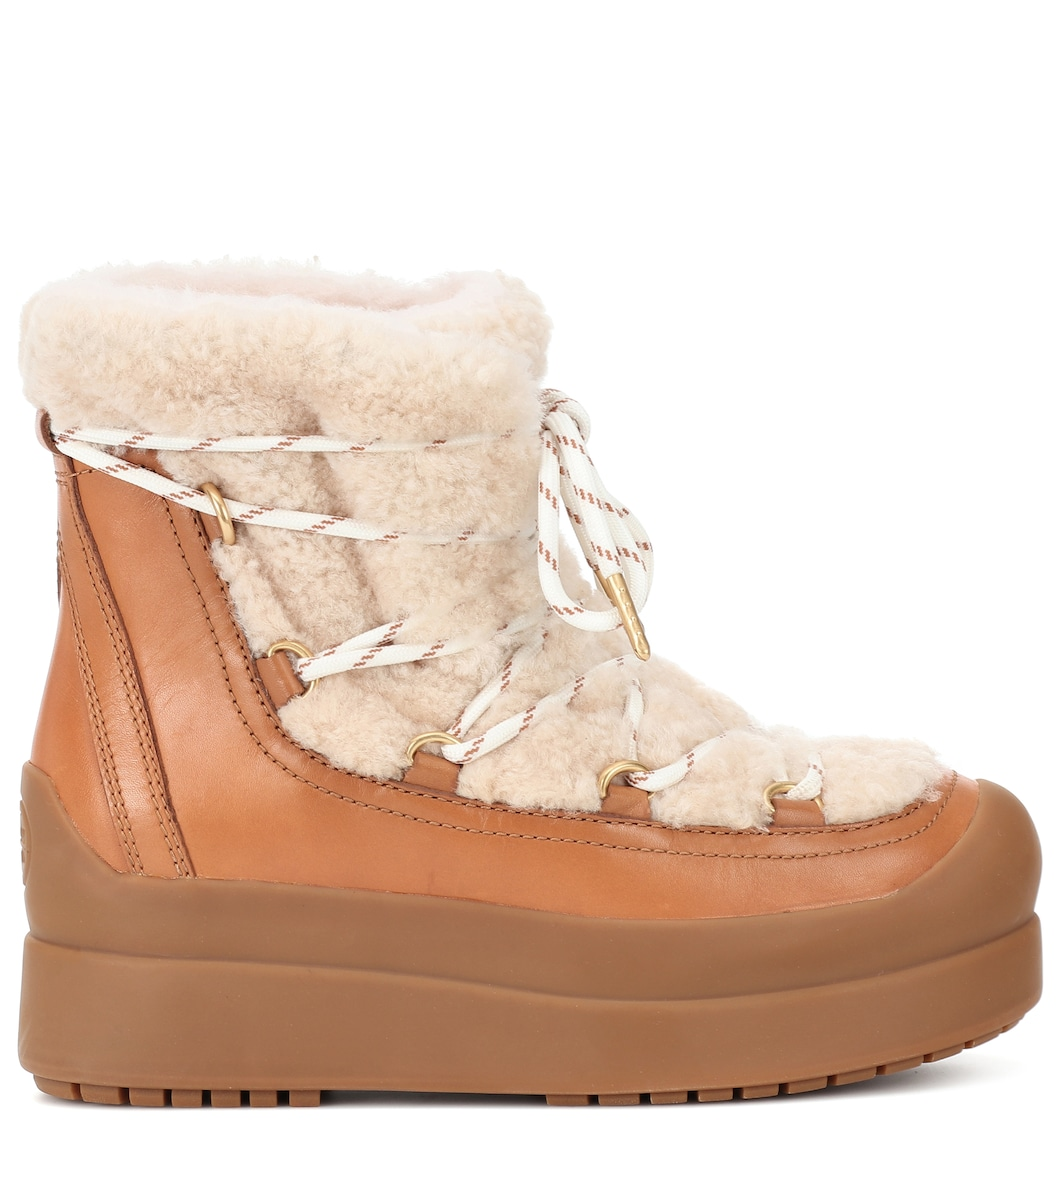 f1ff16a93d2 Tory Burch - Courtney 60mm shearling ankle boots